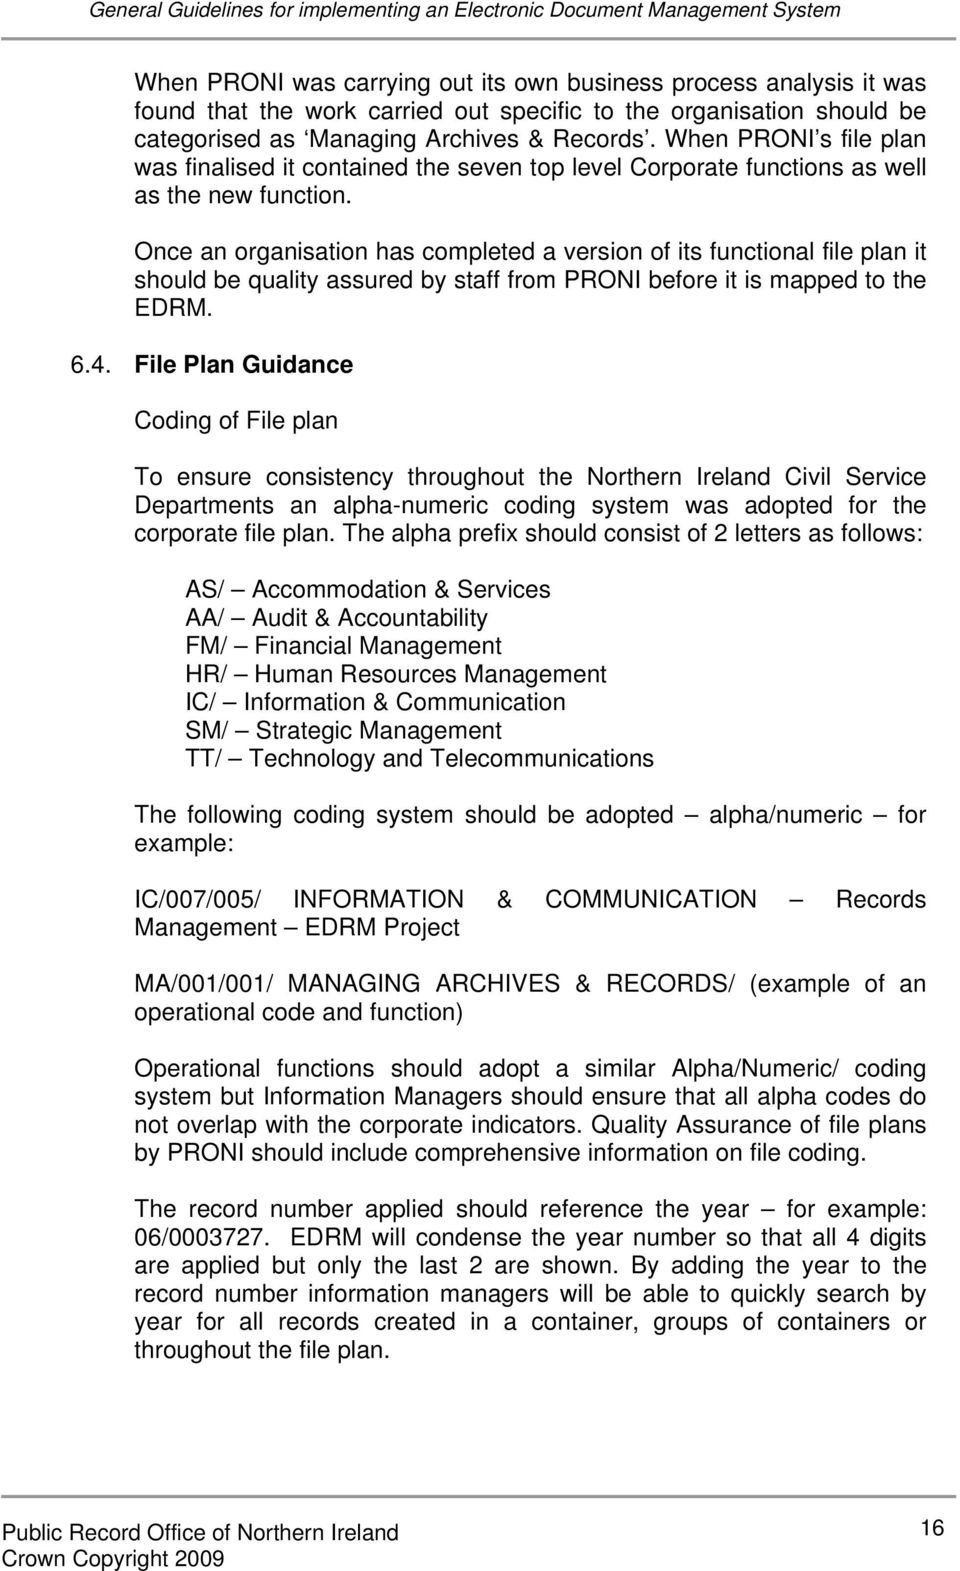 General Guidelines For Implementing An Electronic Document And